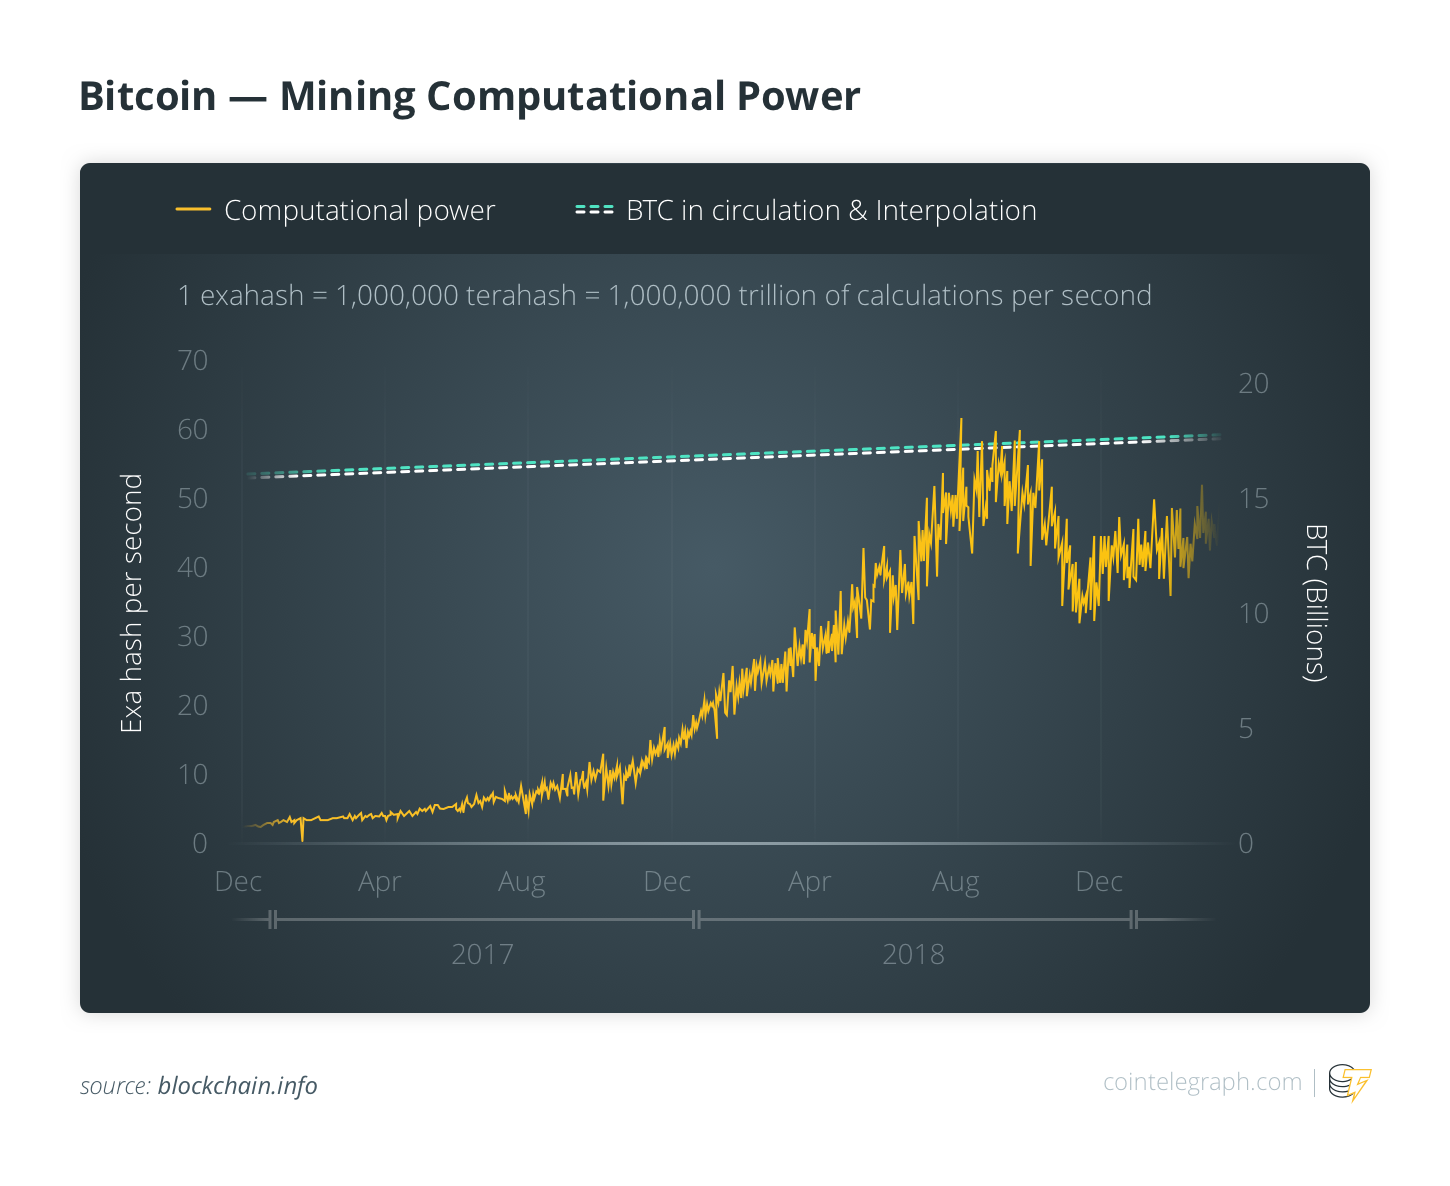 Bitcoin Mining Computational Power